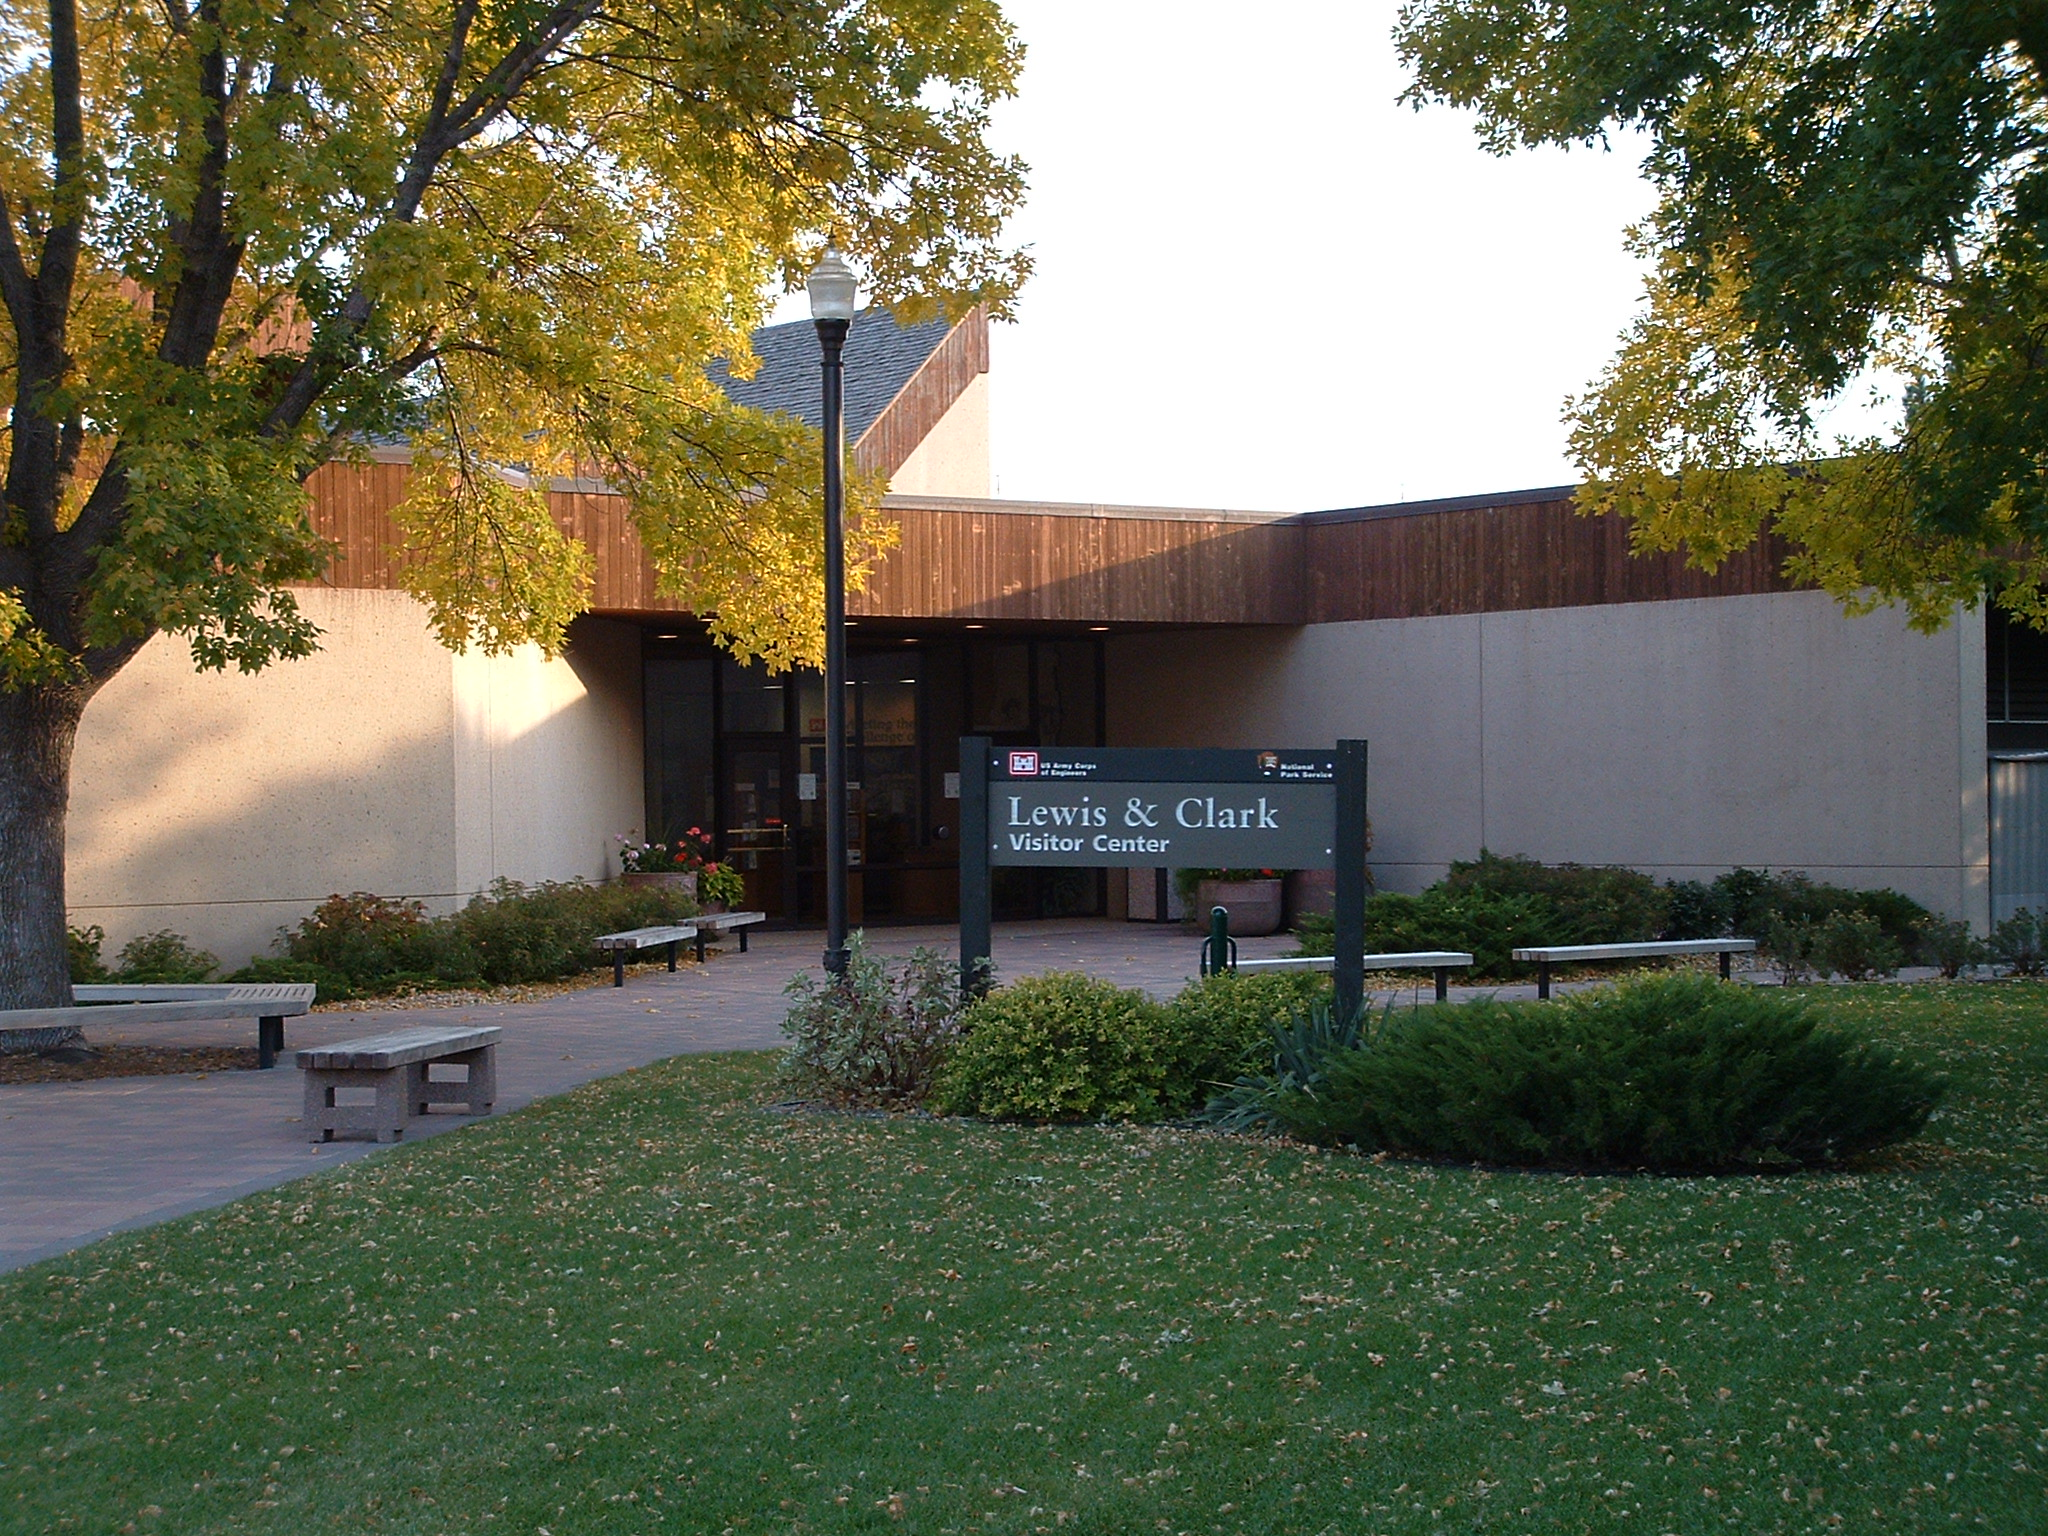 Picture of the Lewis and Clark Visitor Center